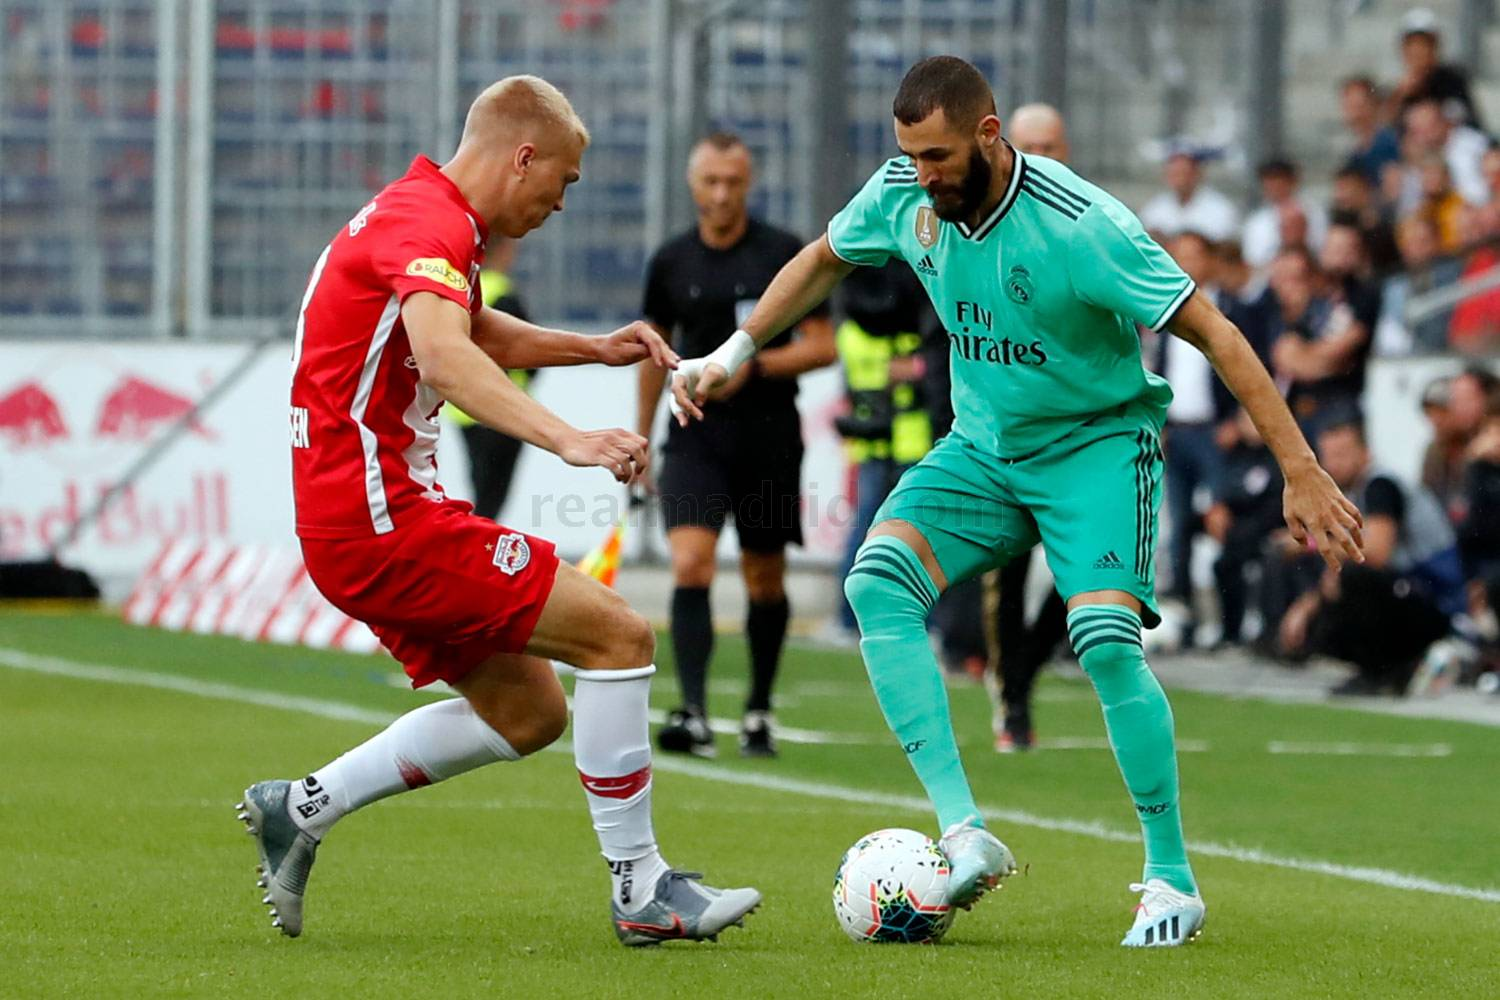 Real Madrid - Red Bull Salzburgo - Real Madrid - 07-08-2019